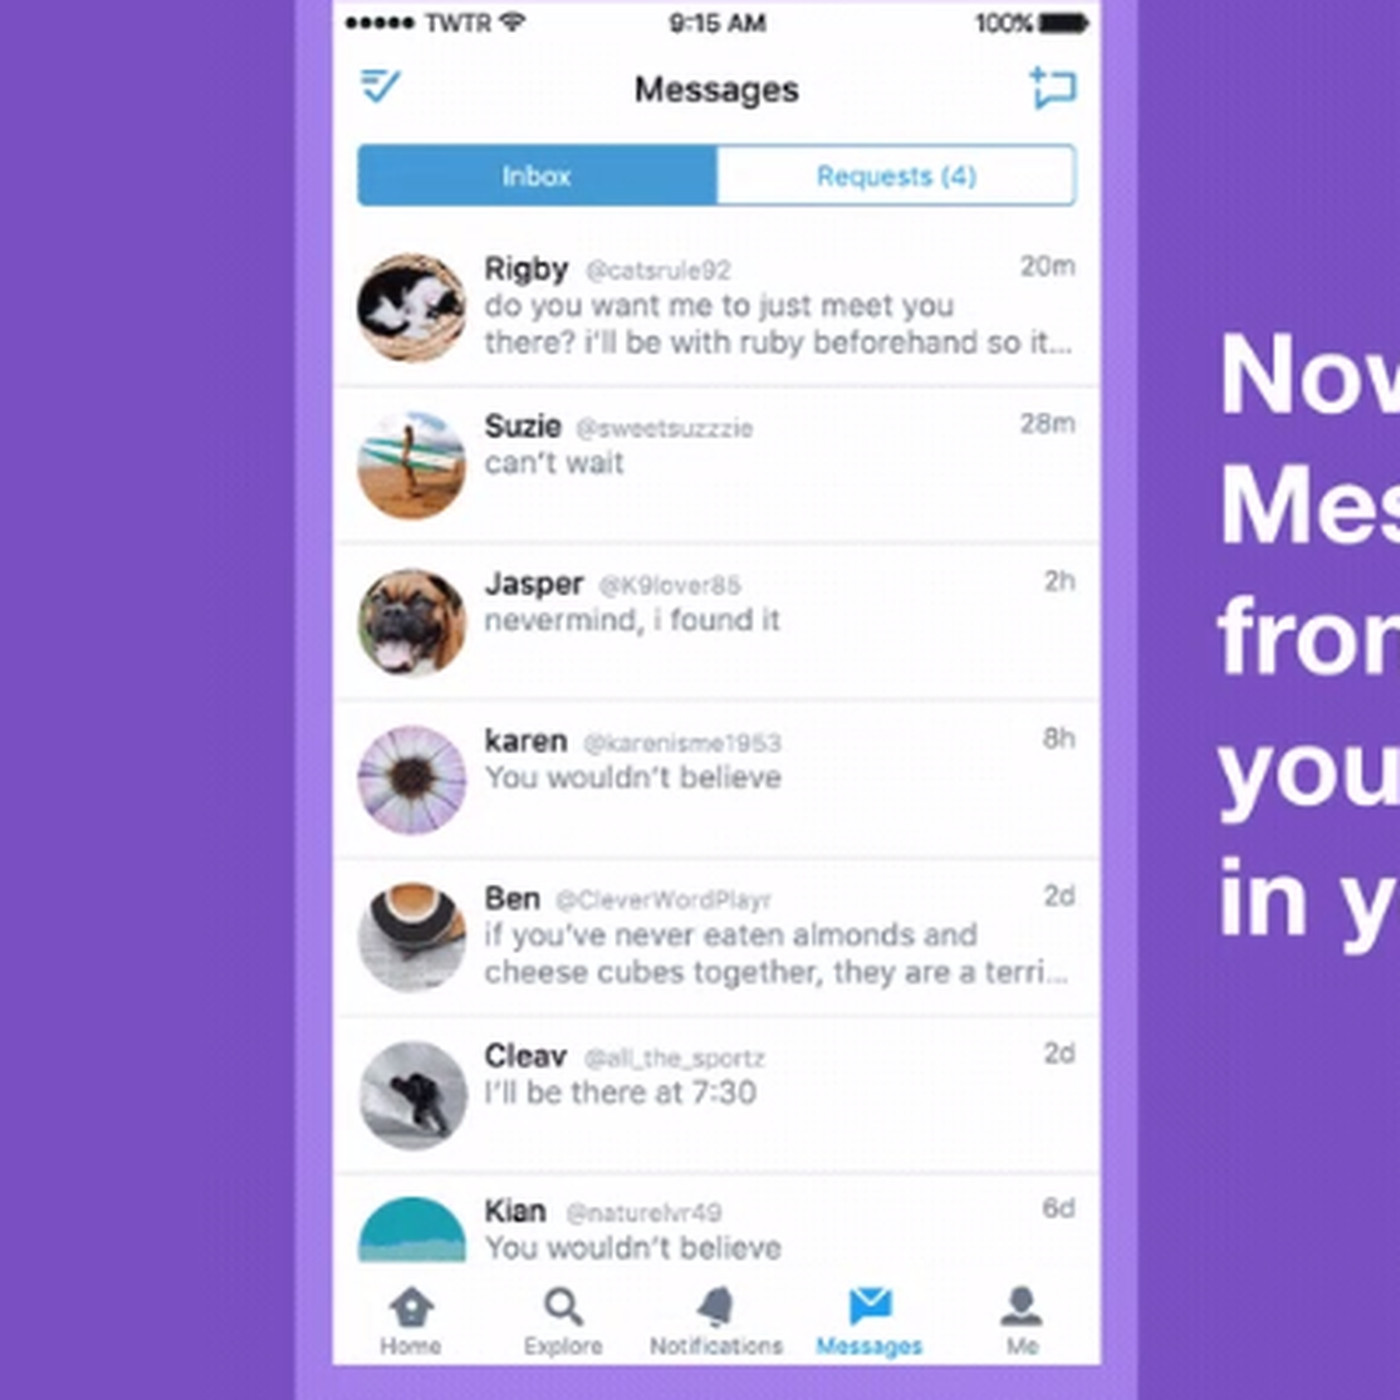 Twitter now filters DMs from people you don't know - The Verge